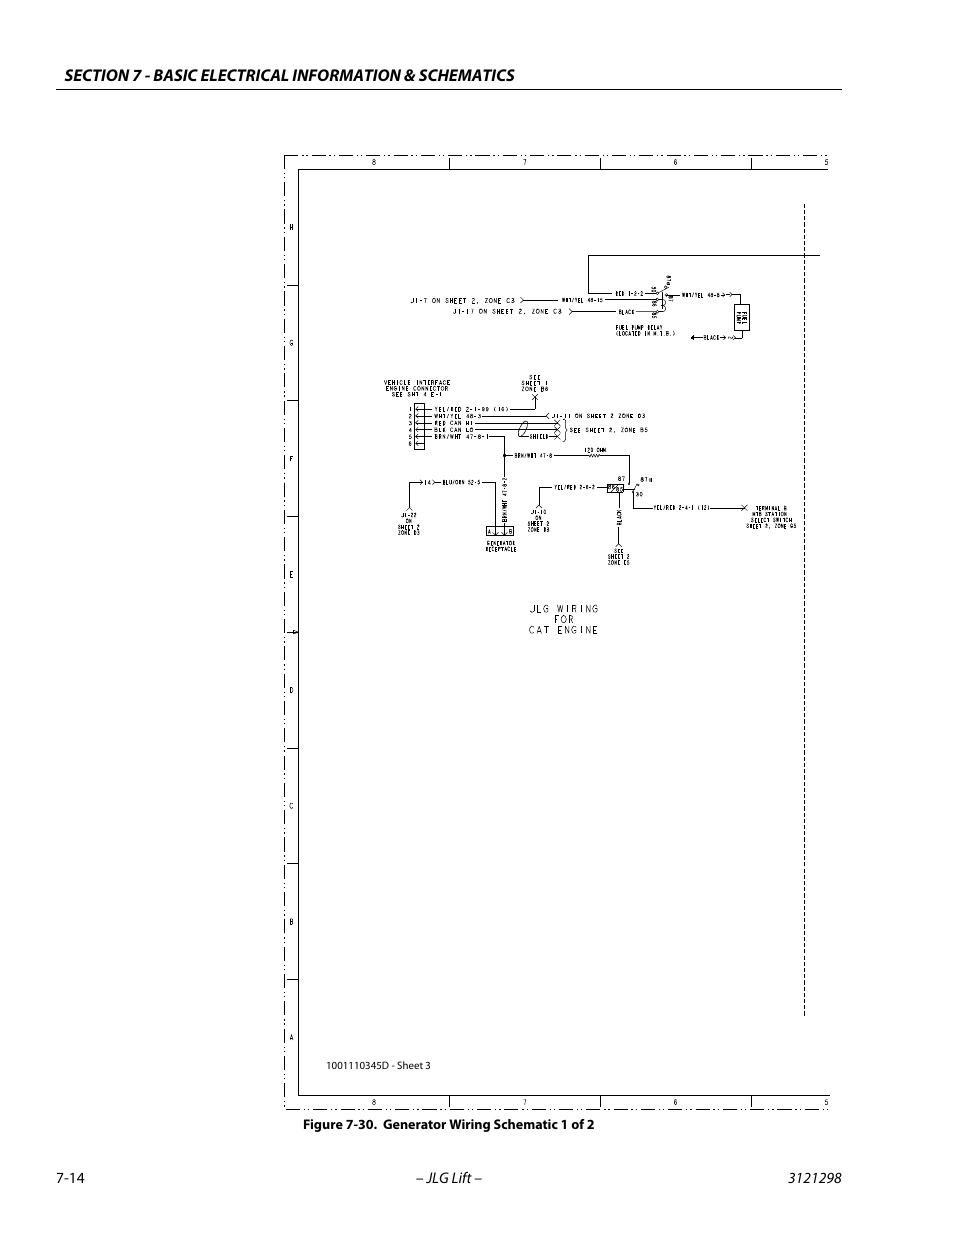 Generator wiring schematic 1 of 2 -14 | JLG 660SJ Service Manual User Manual  | Page 314 / 328Manuals Directory